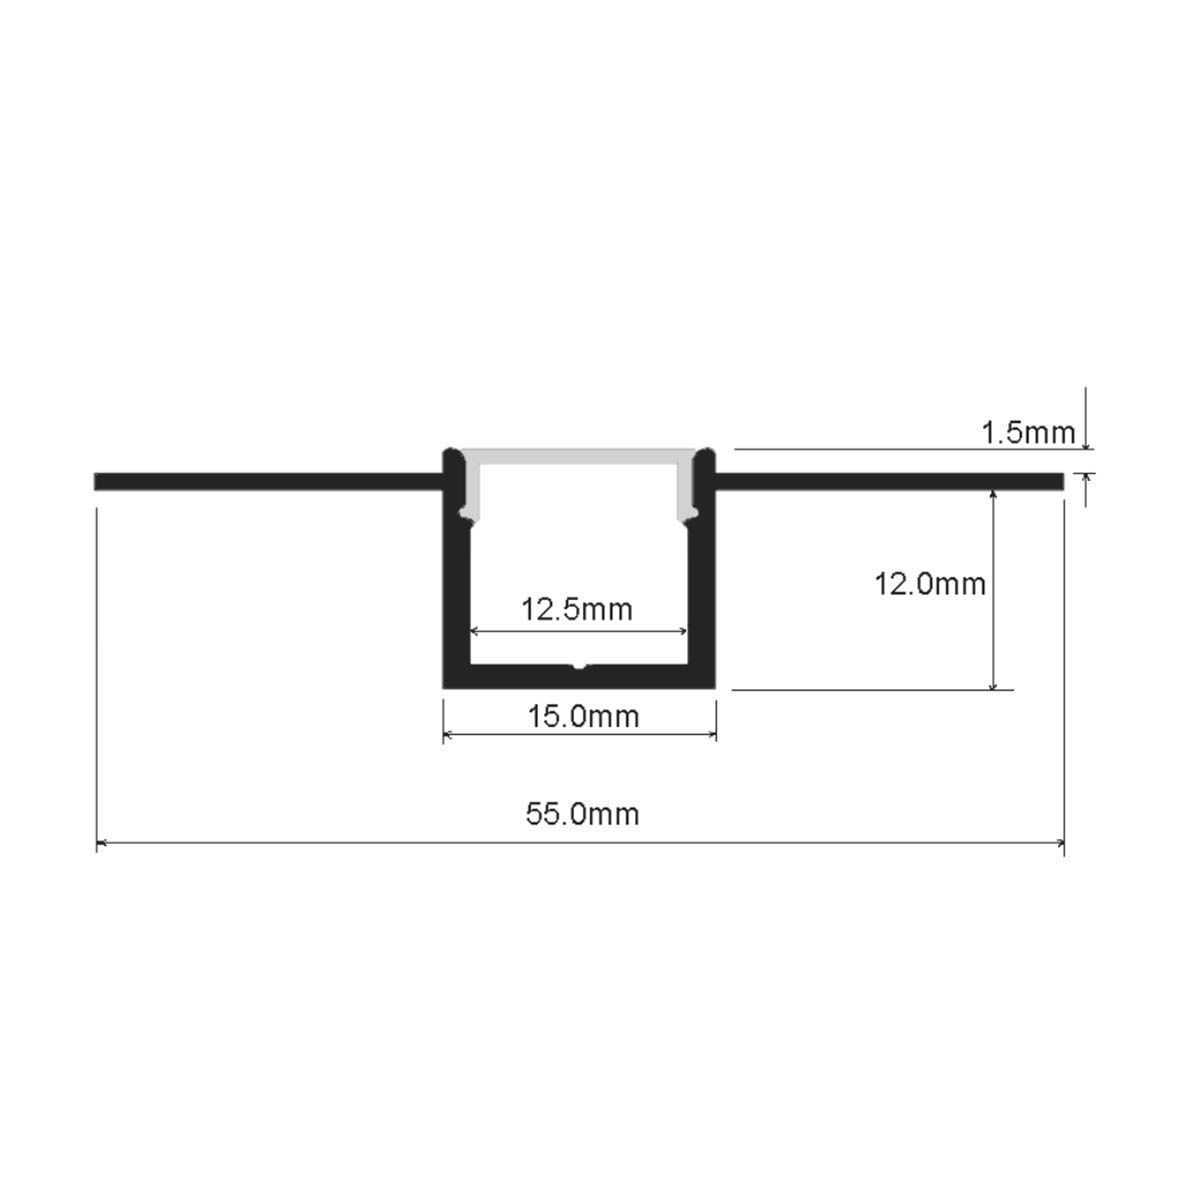 StarlandLed 5-Pack 6.6FT/2 Meter Plaster-in Recessed Slim LED Aluminum Channel with Flange for LED Strip, Aluminium LED Profile with Clip-in Diffuser and End Caps by StarlandLed (Image #3)